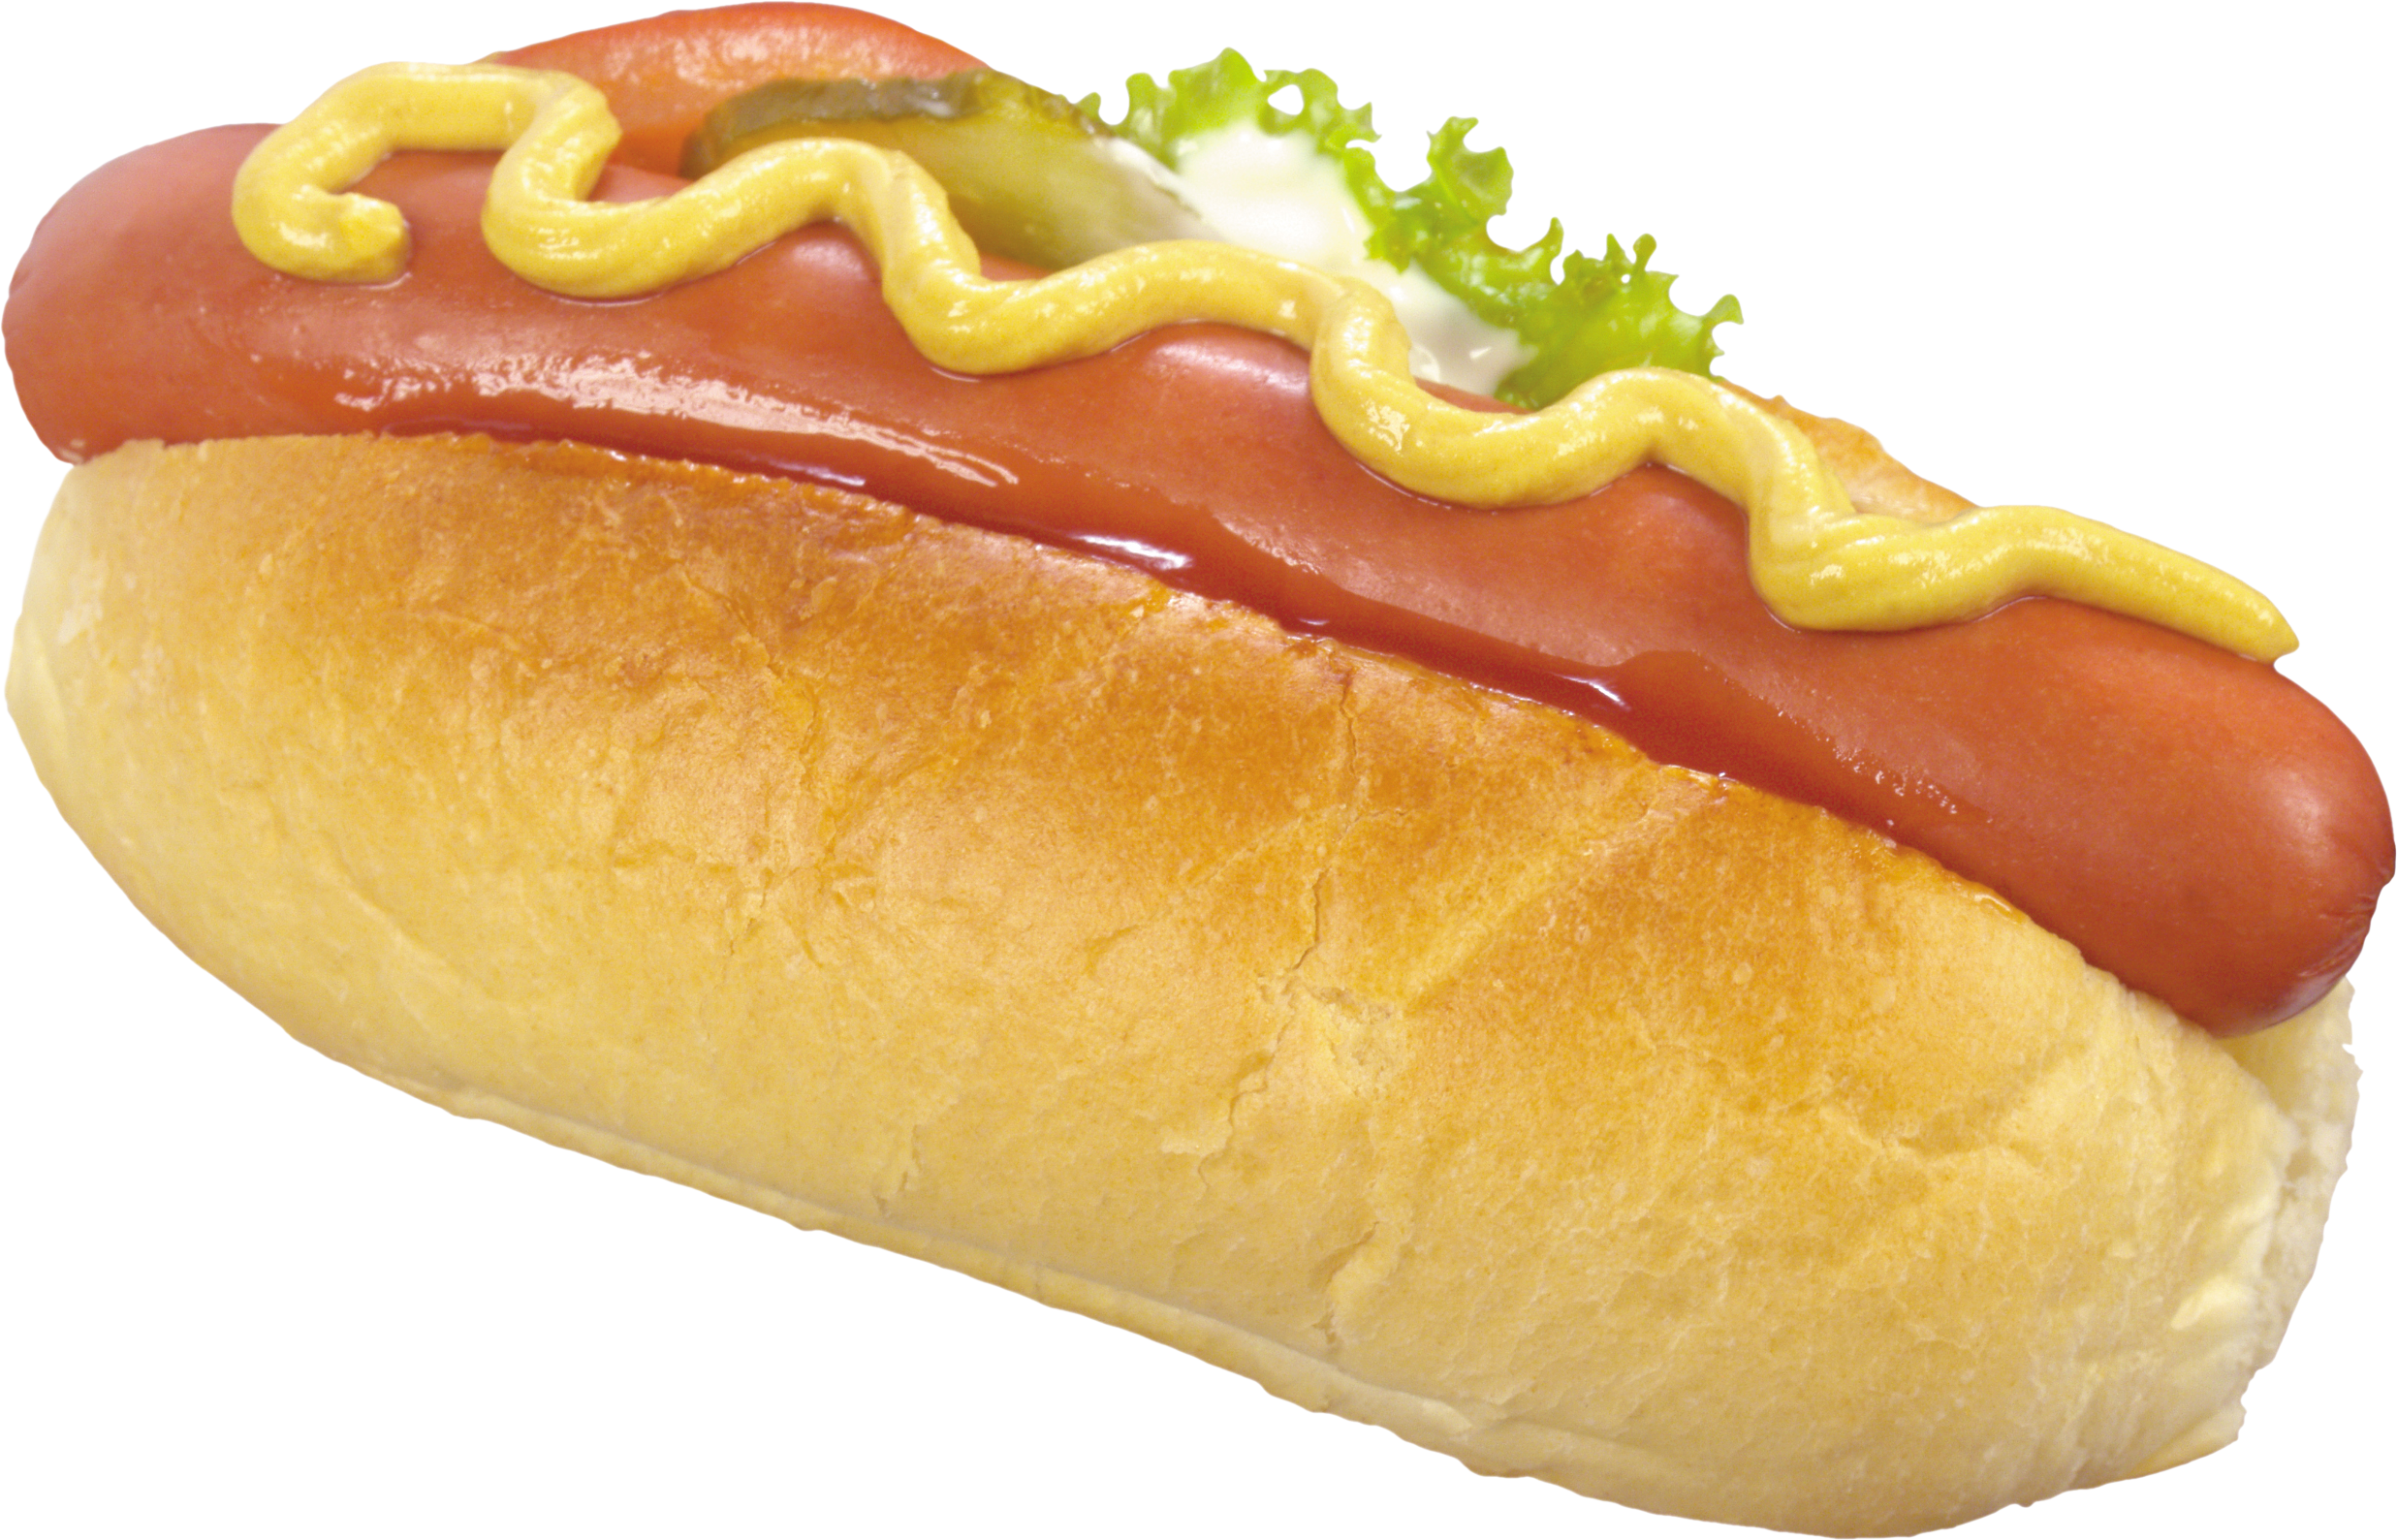 Hot dog bun clipart jpg freeuse stock Hot Dog PNG Image - PurePNG | Free transparent CC0 PNG Image Library jpg freeuse stock